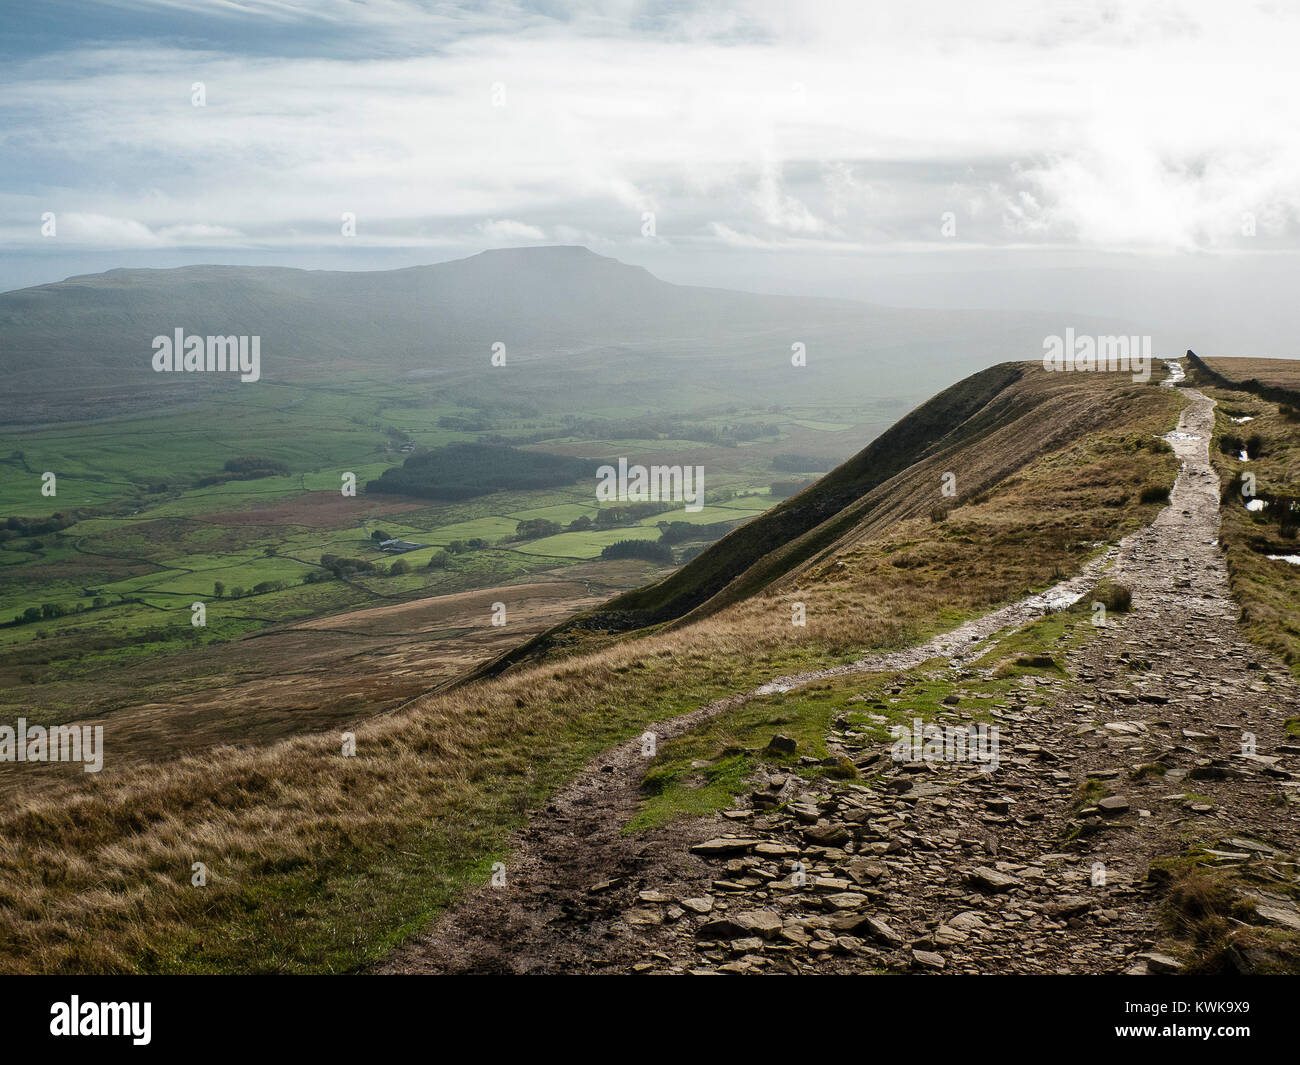 View from Whernside, 3 peaks, Yorkshire Dales, England, UK - Stock Image